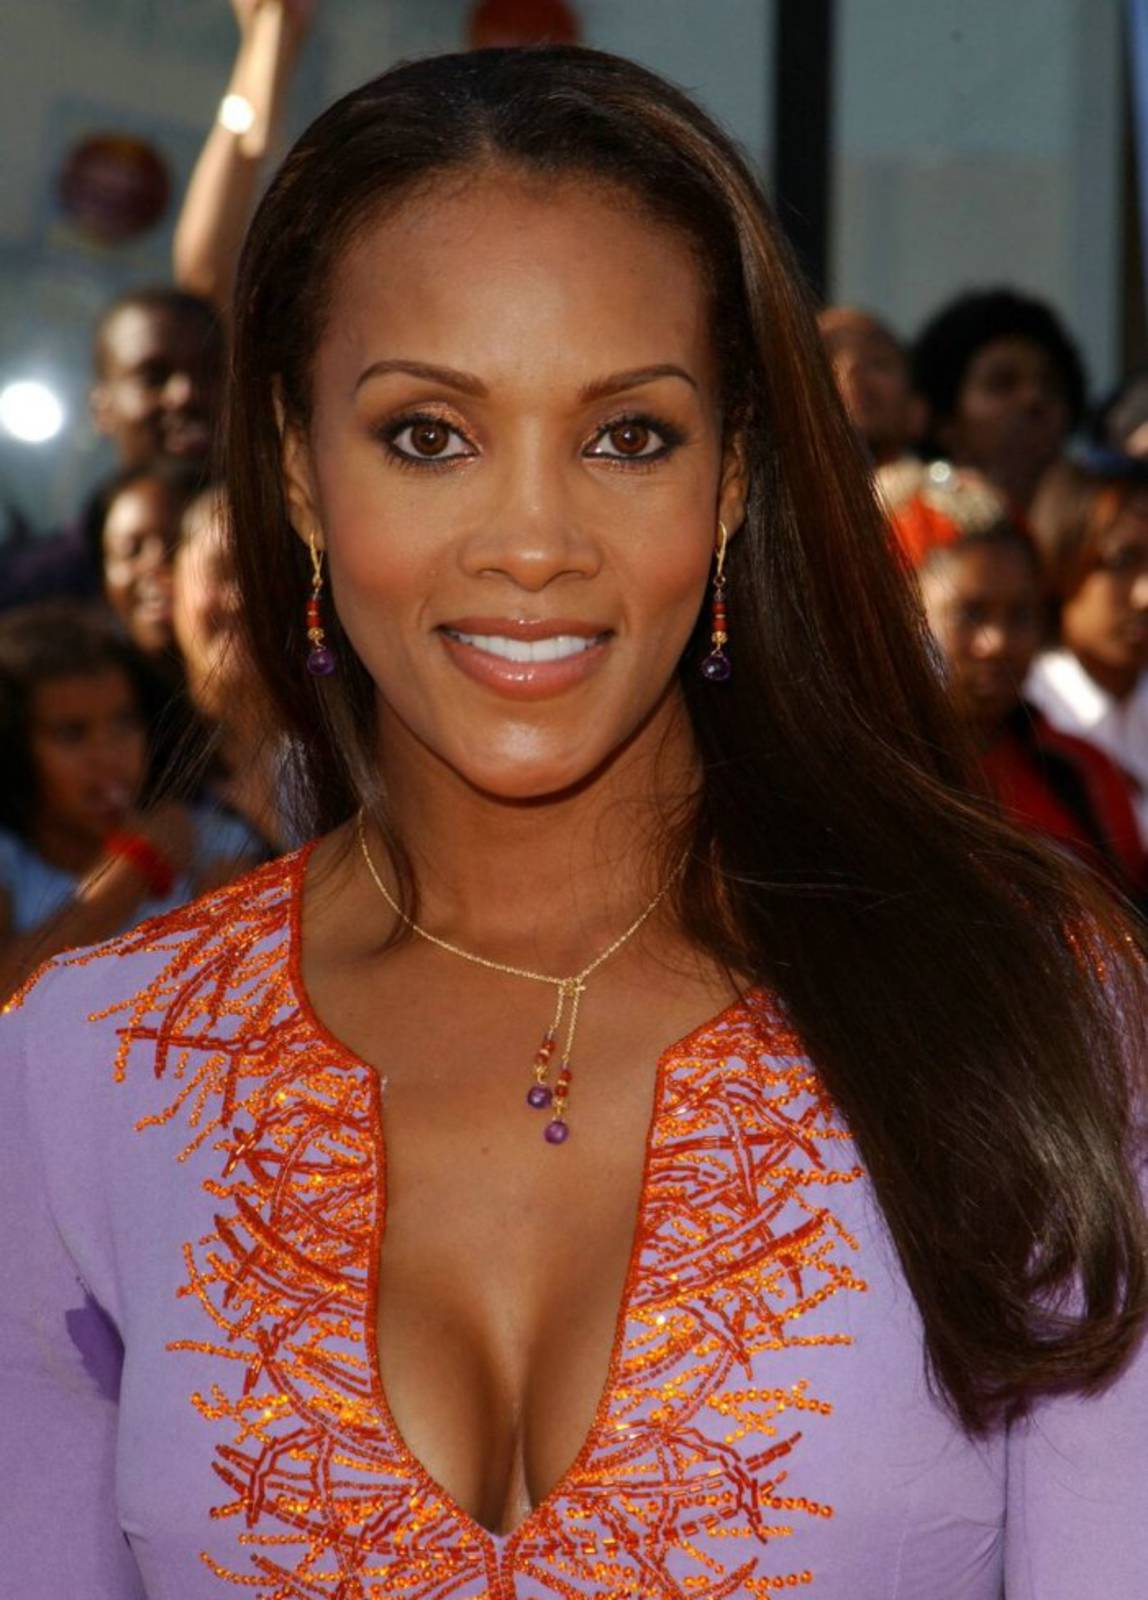 Sexy Vivica A. Fox nudes (97 photos), Tits, Leaked, Twitter, underwear 2020